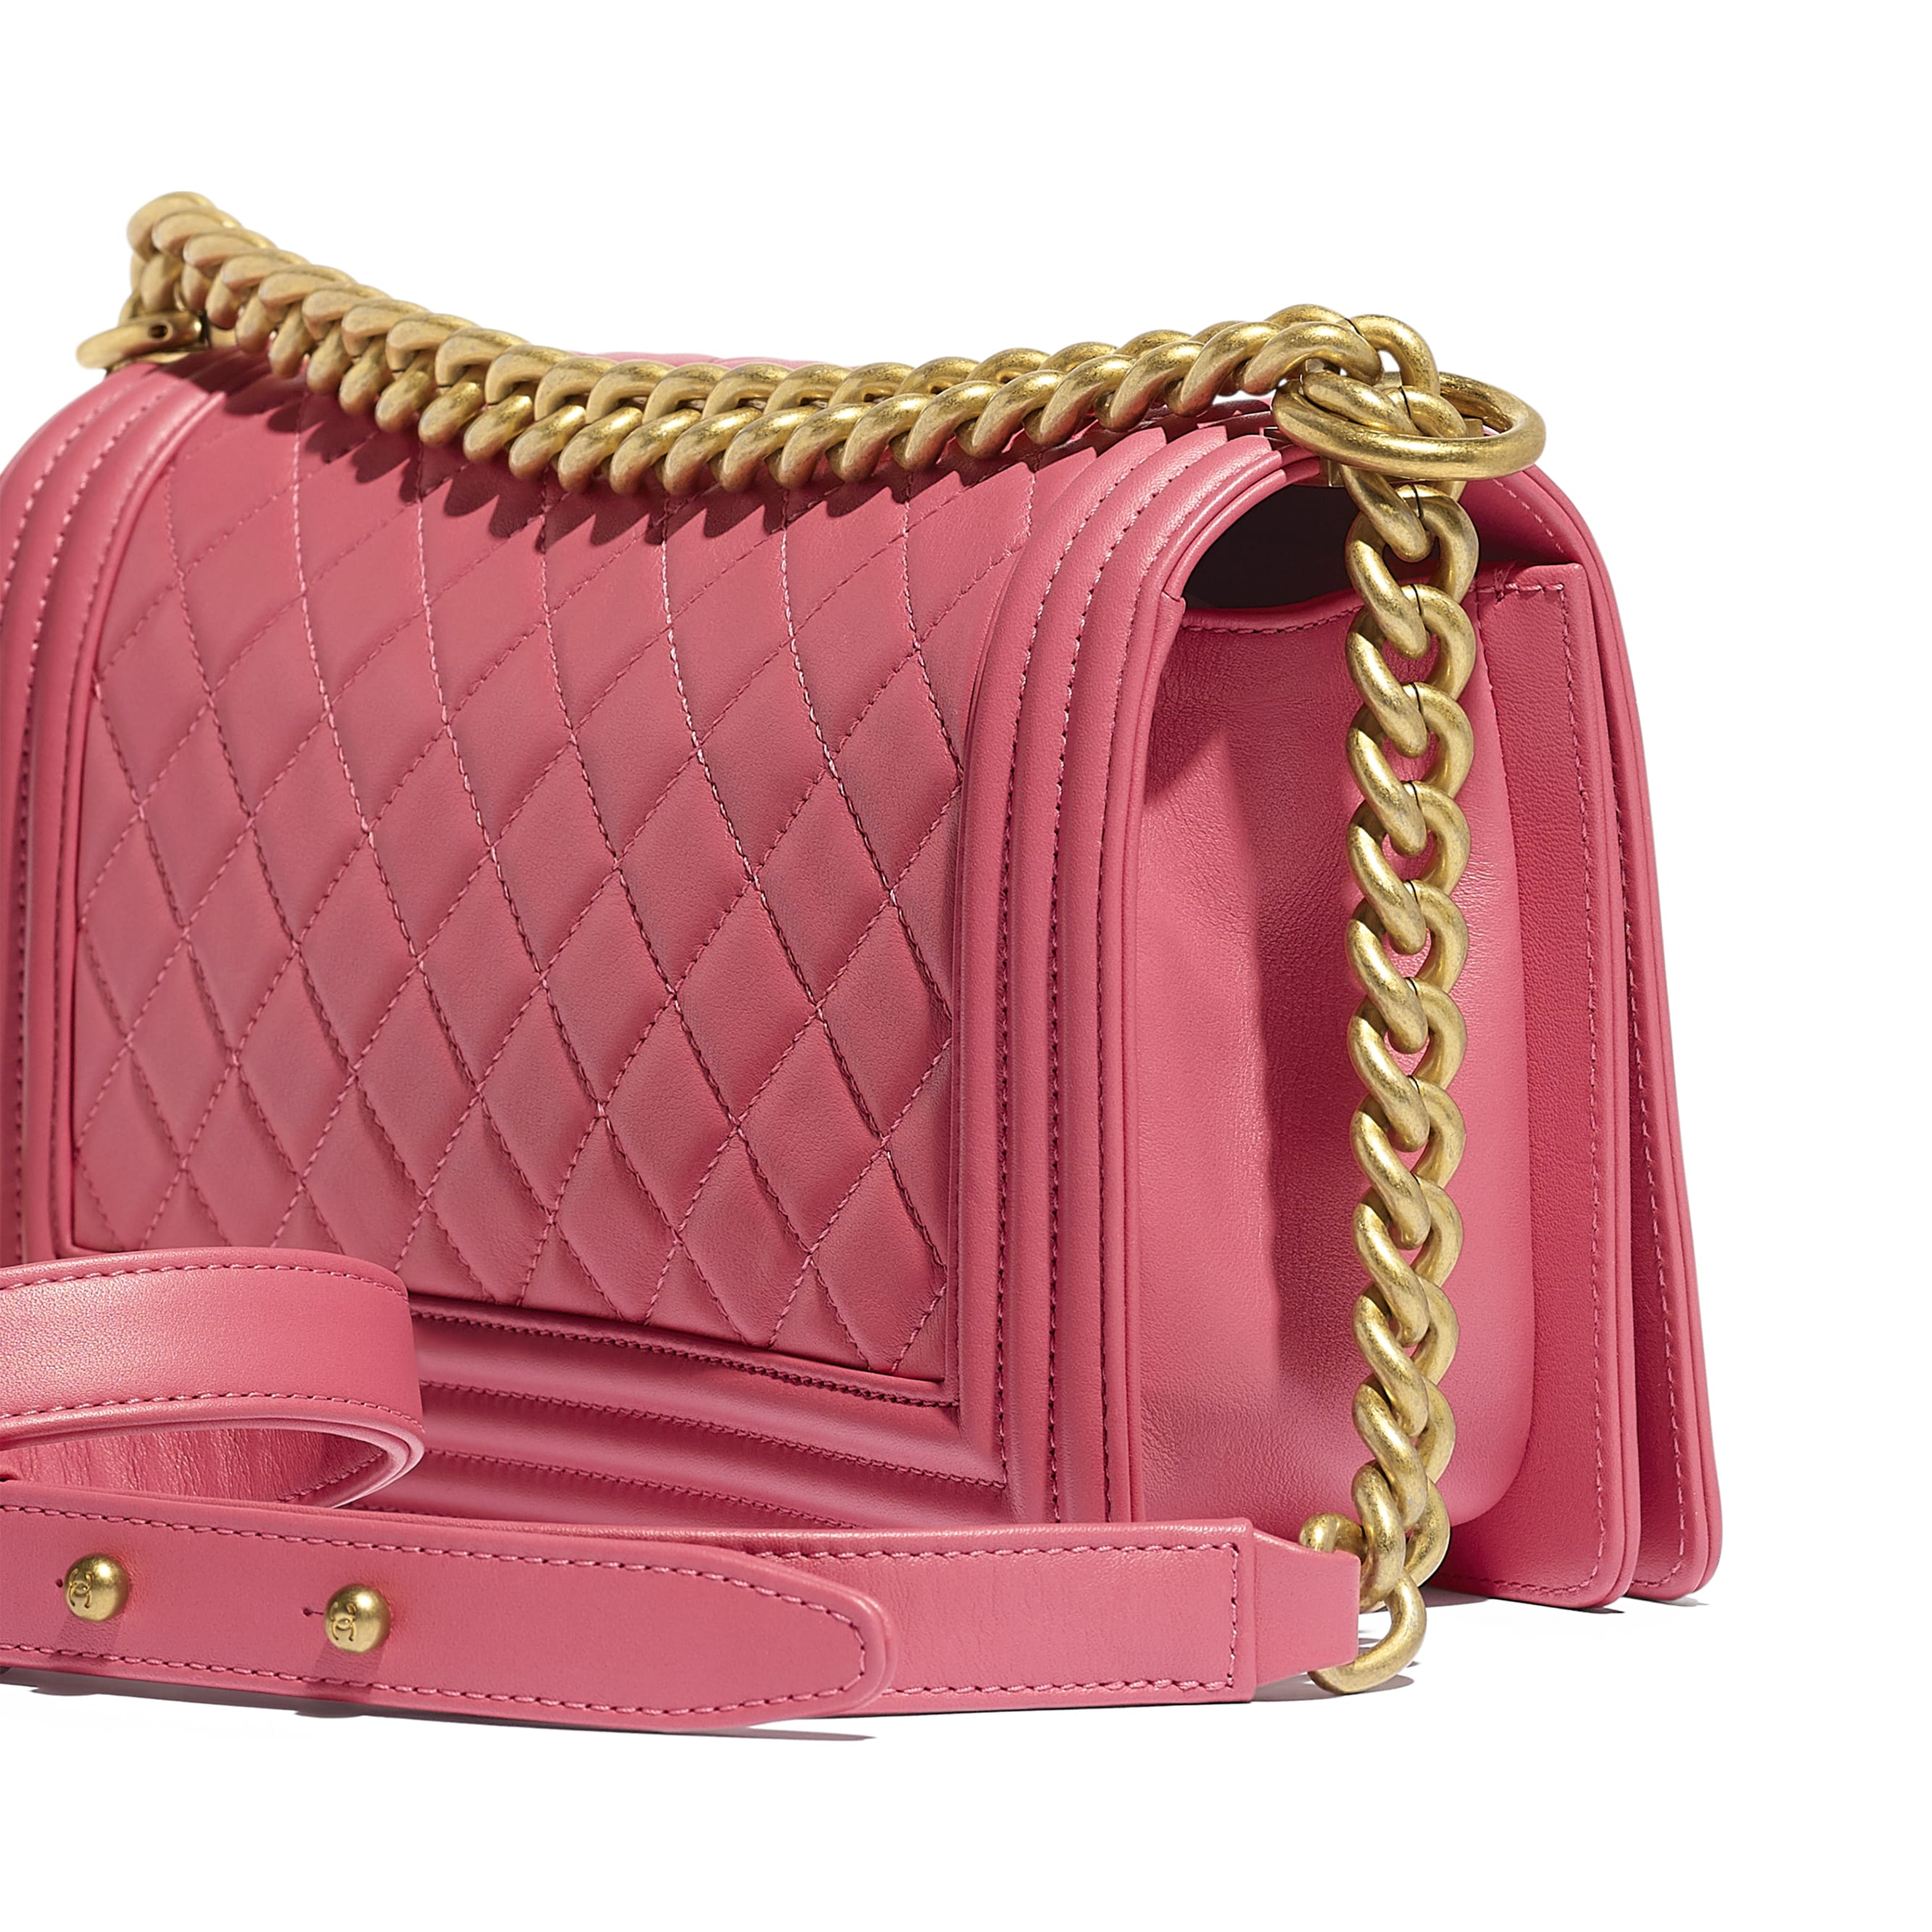 BOY CHANEL Handbag - Pink - Calfskin & Gold-Tone Metal - CHANEL - Extra view - see standard sized version